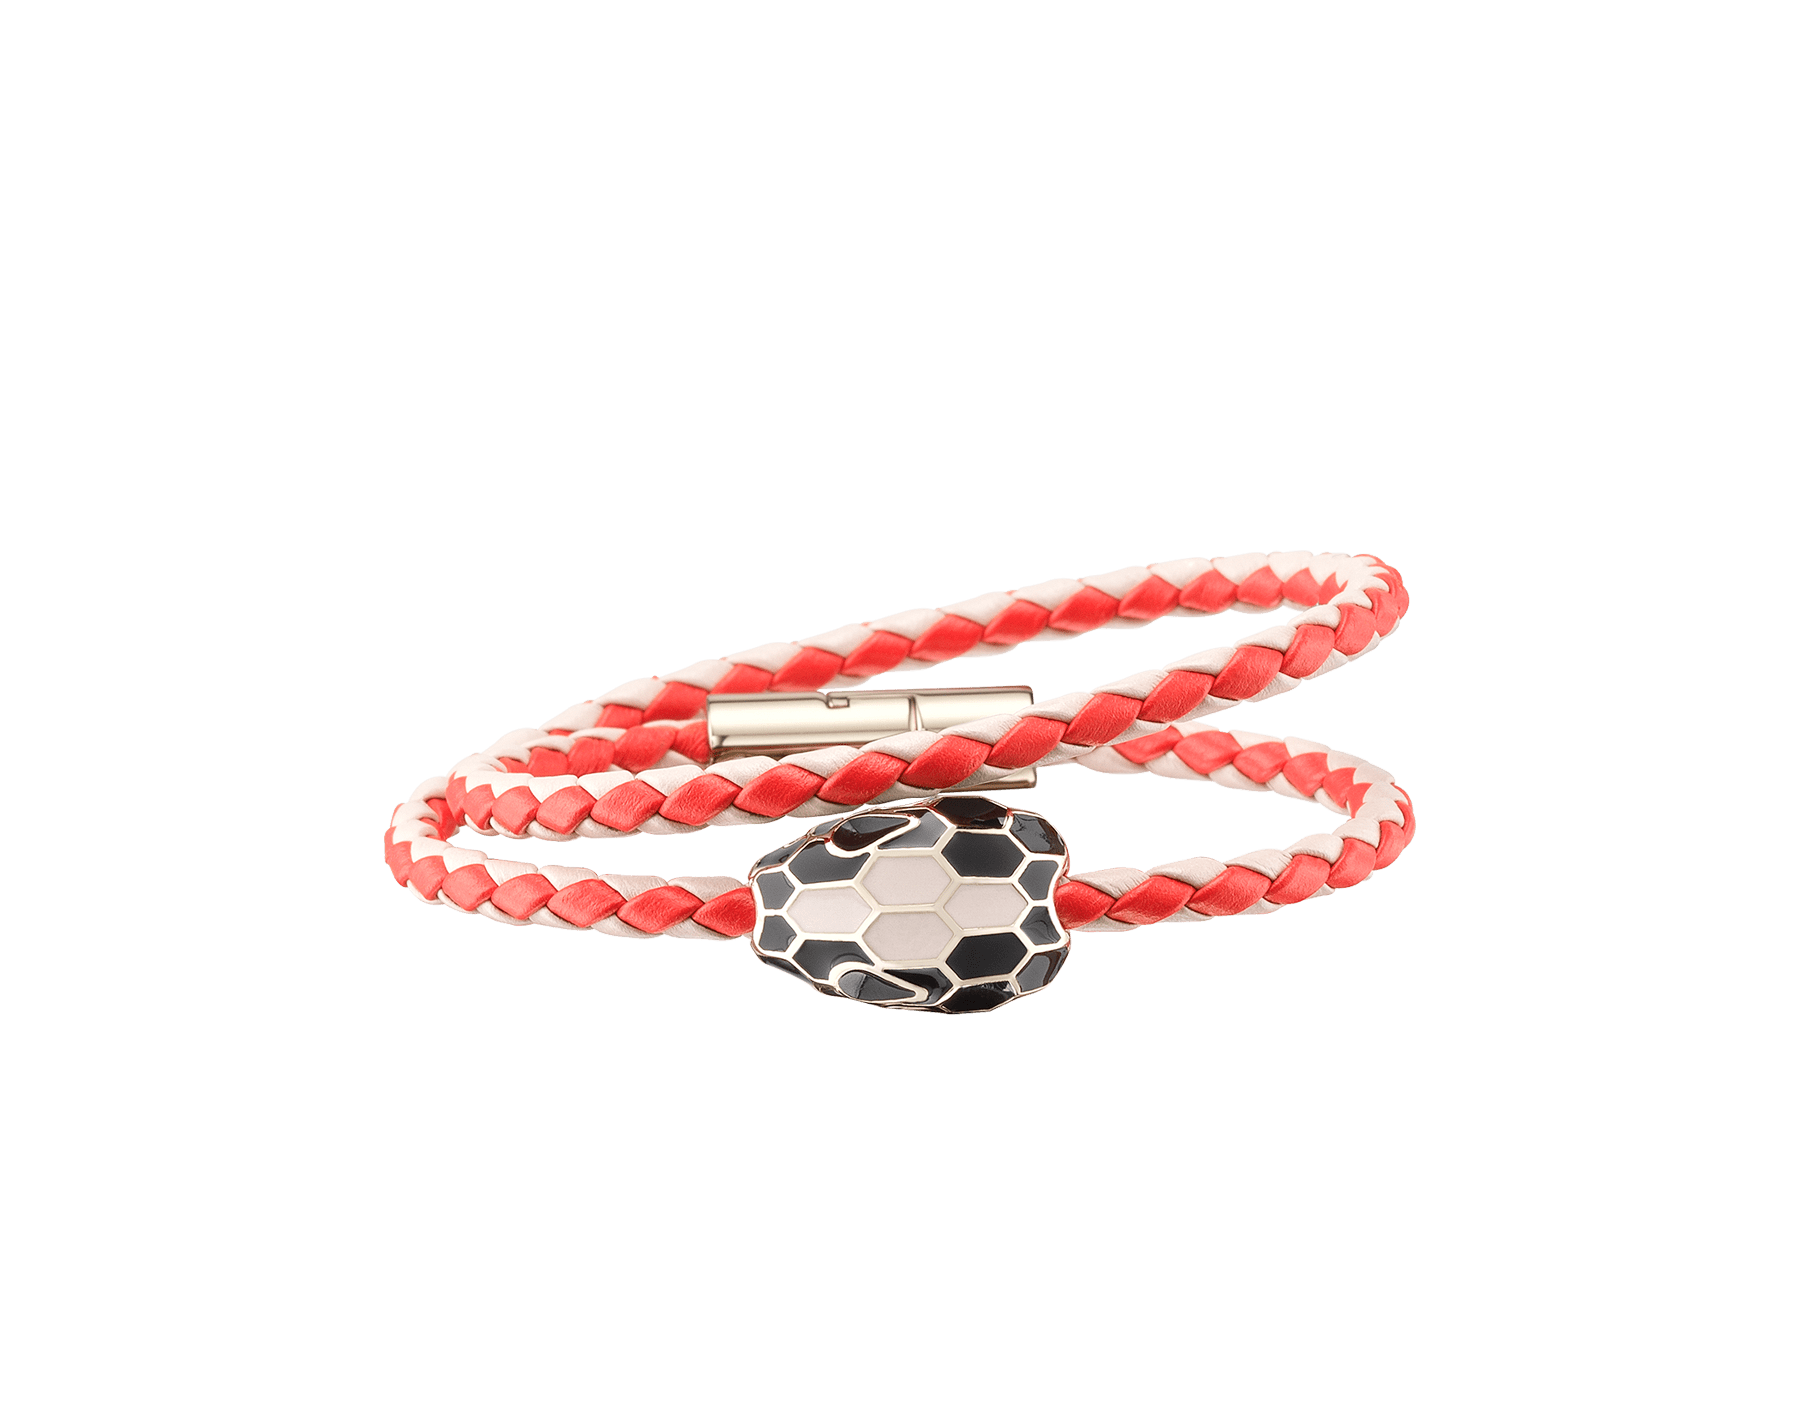 Serpenti Forever multi-coiled braid bracelet in sea star coral and milky opal woven calf leather with an iconic snakehead decoration in black and milky opal enamel. 288353 image 1